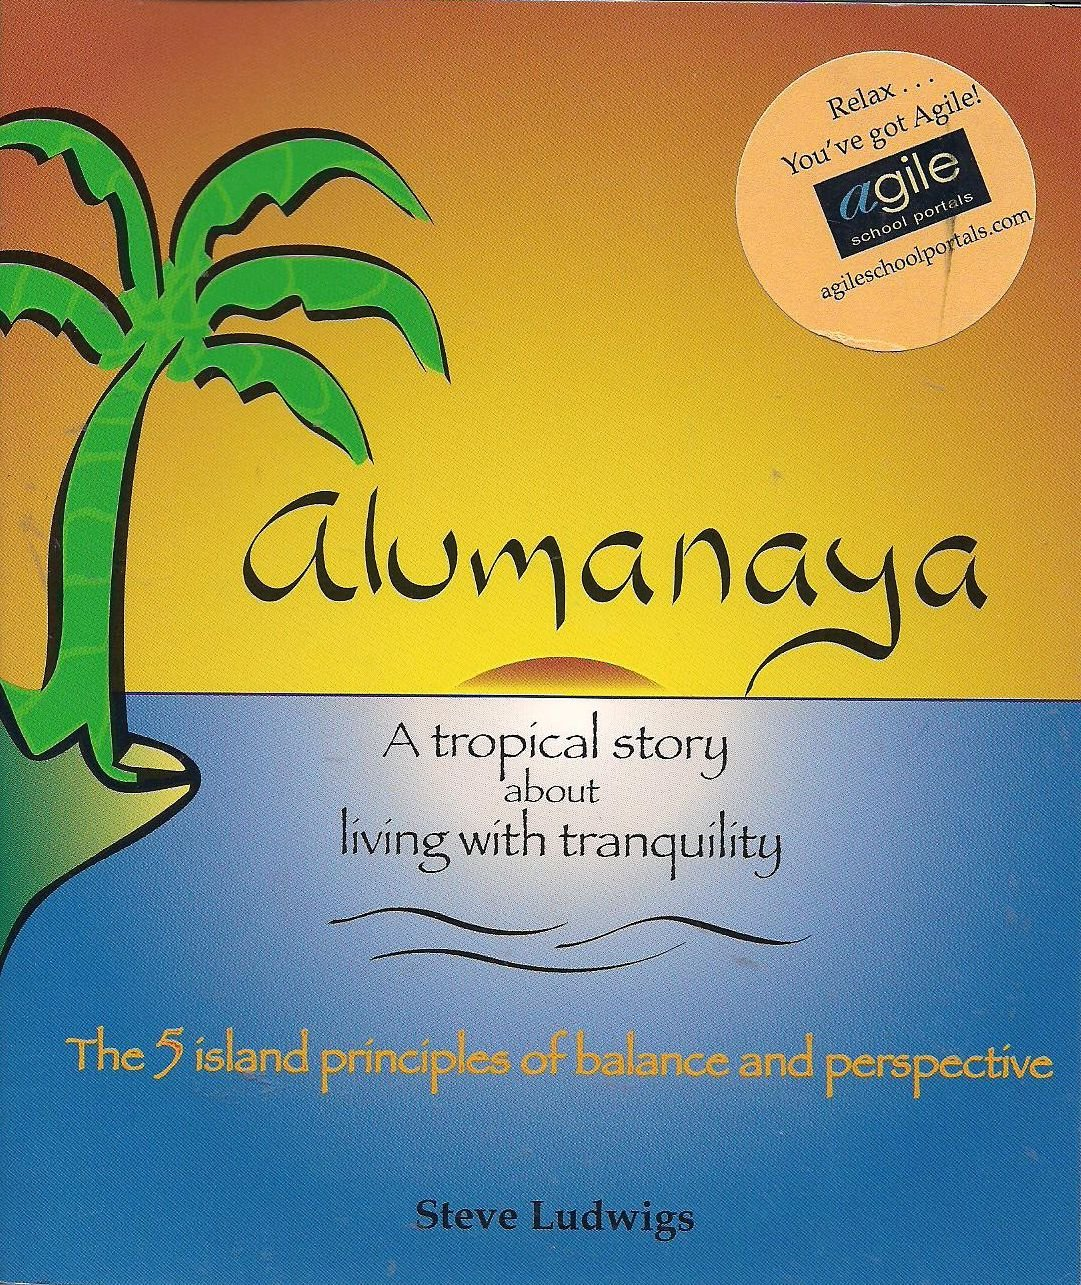 Alumanaya: A Tropical Story About Living With Tranquility: The 5 Island Principles of Balance and Perspective pdf